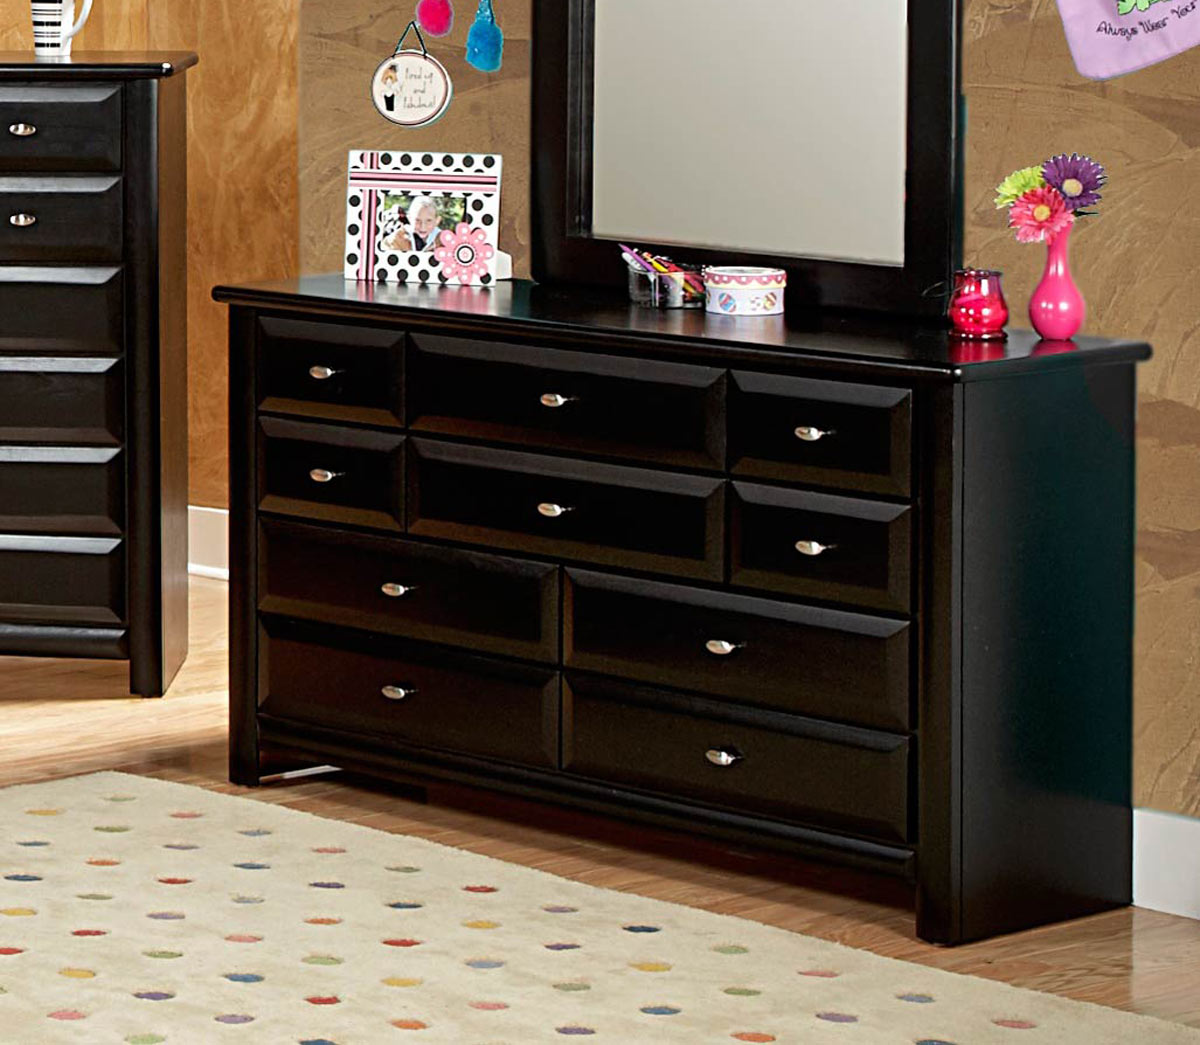 Chelsea Home 3534535 9 Drawer Dresser - Black Cherry